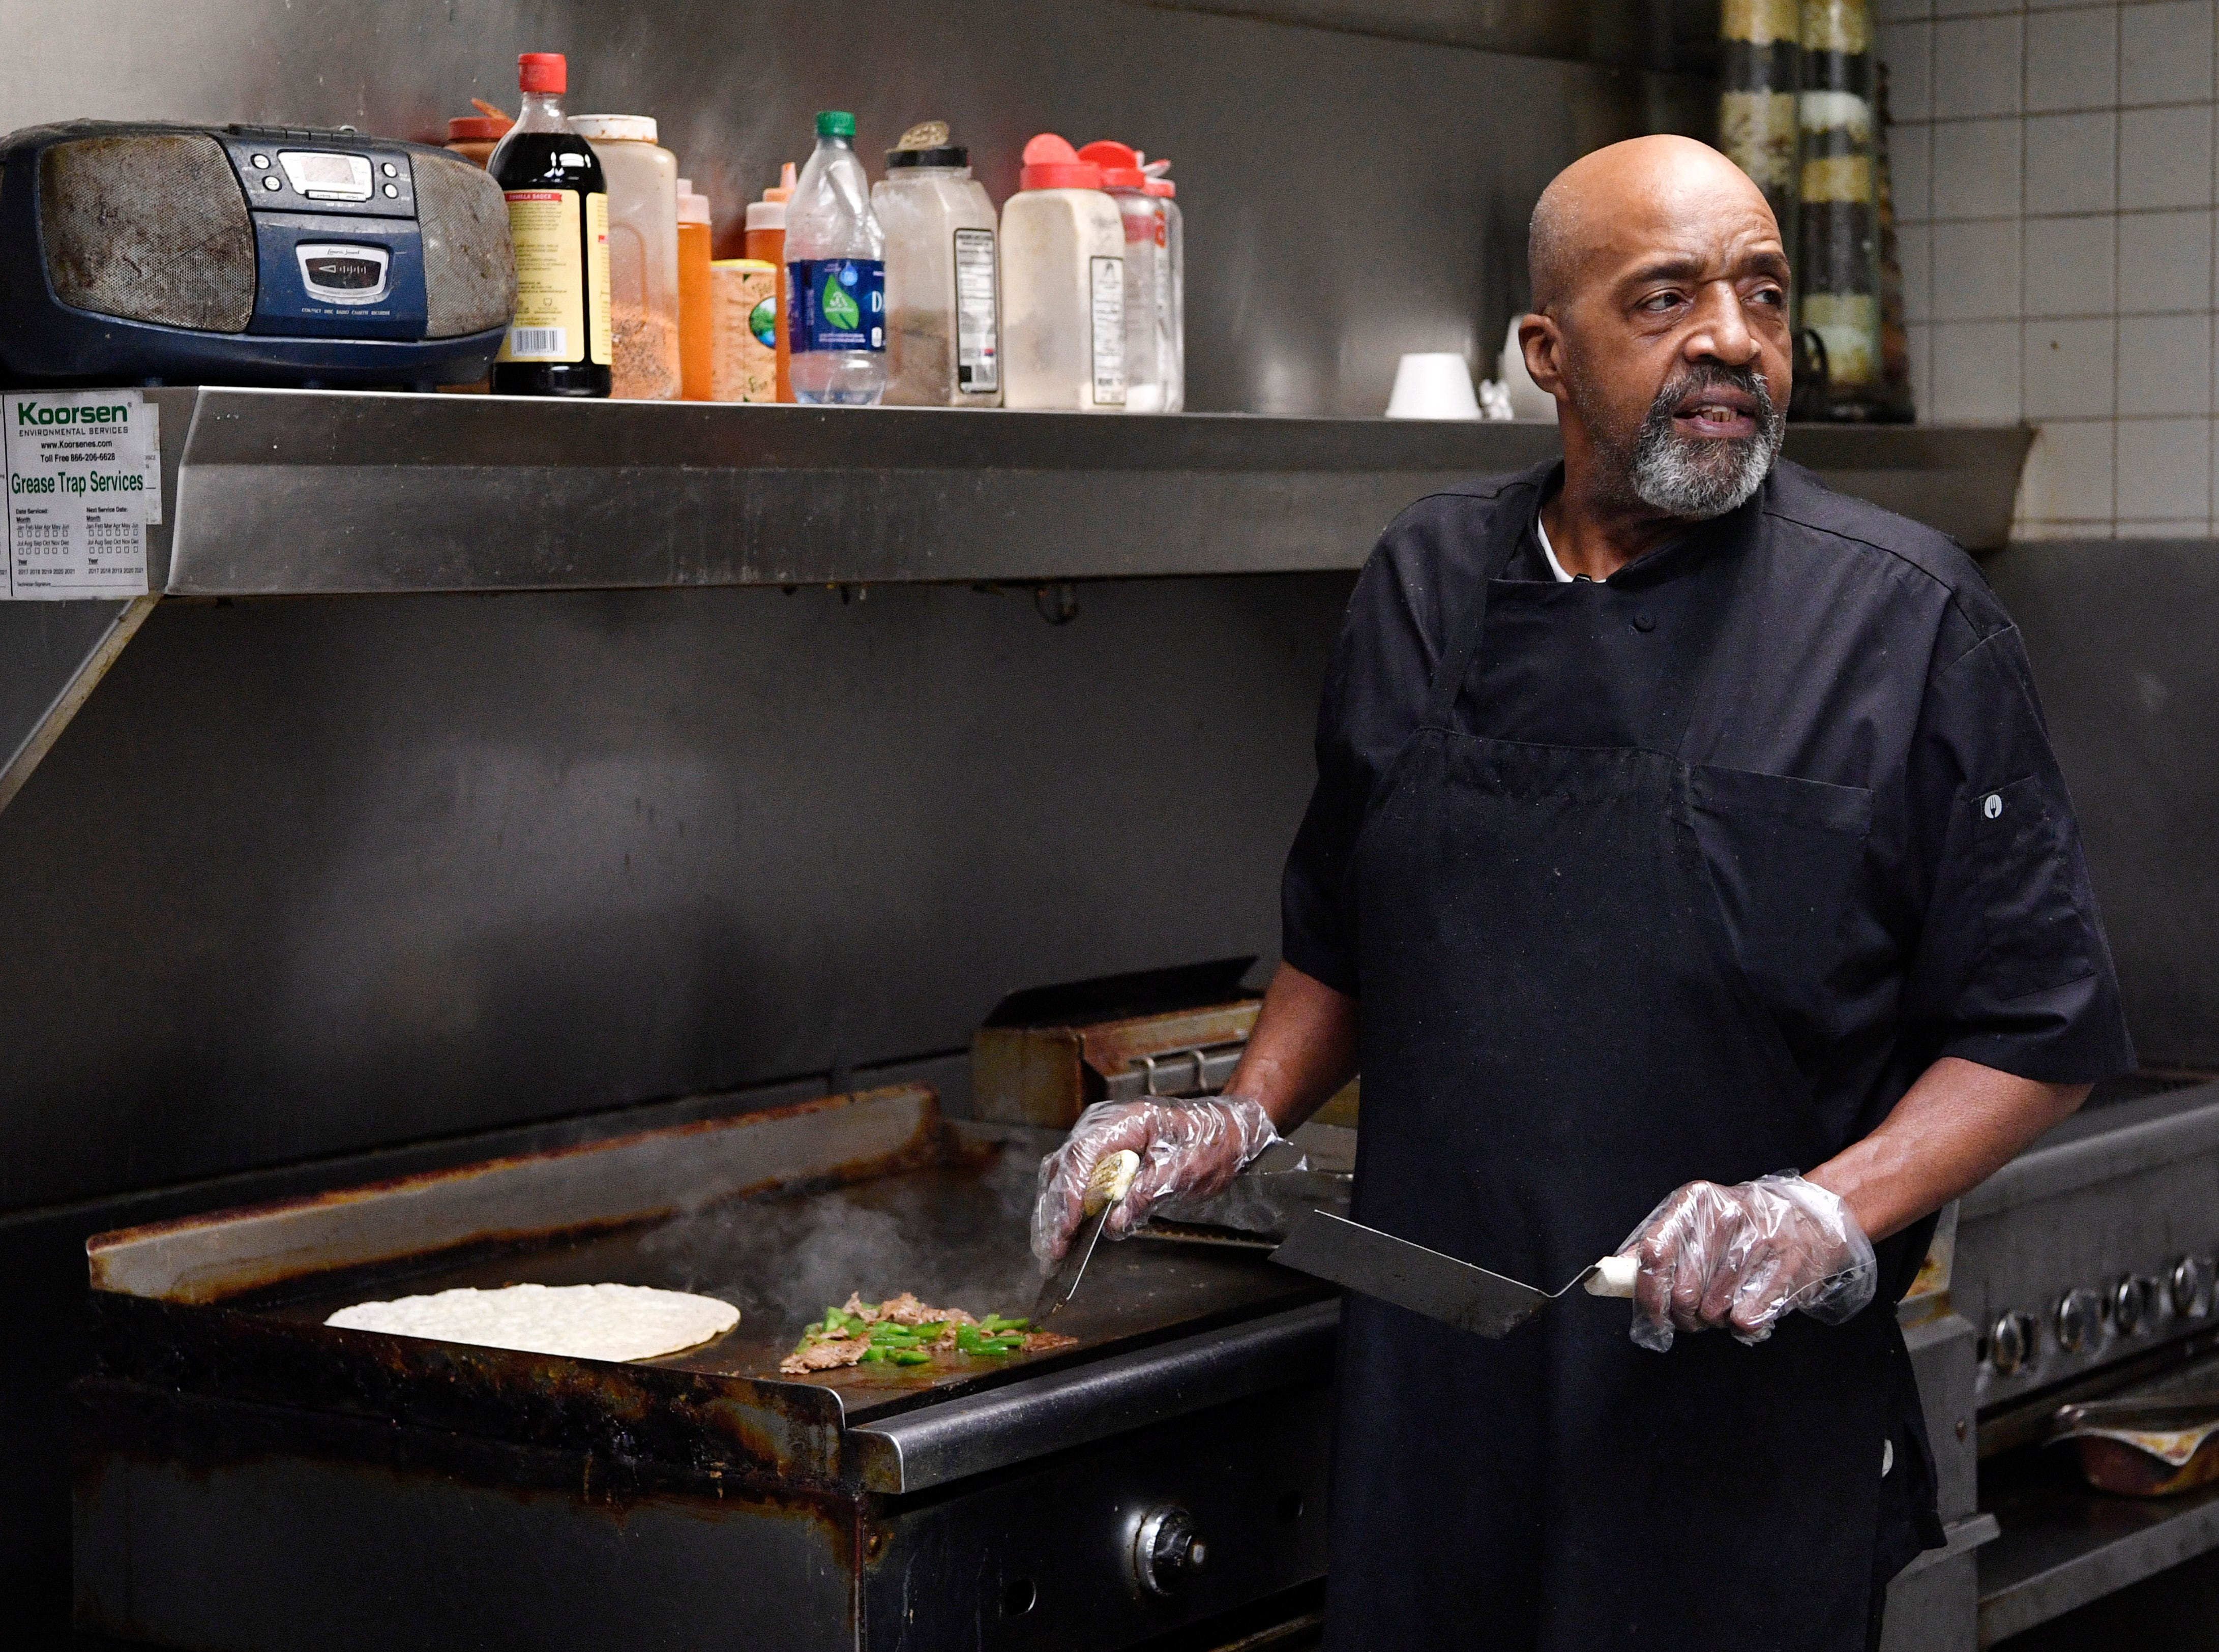 Winston Franklin works the grill in the cafeteria at 1100 Broadway on Wednesday, Jan. 16, 2019, in Nashville.